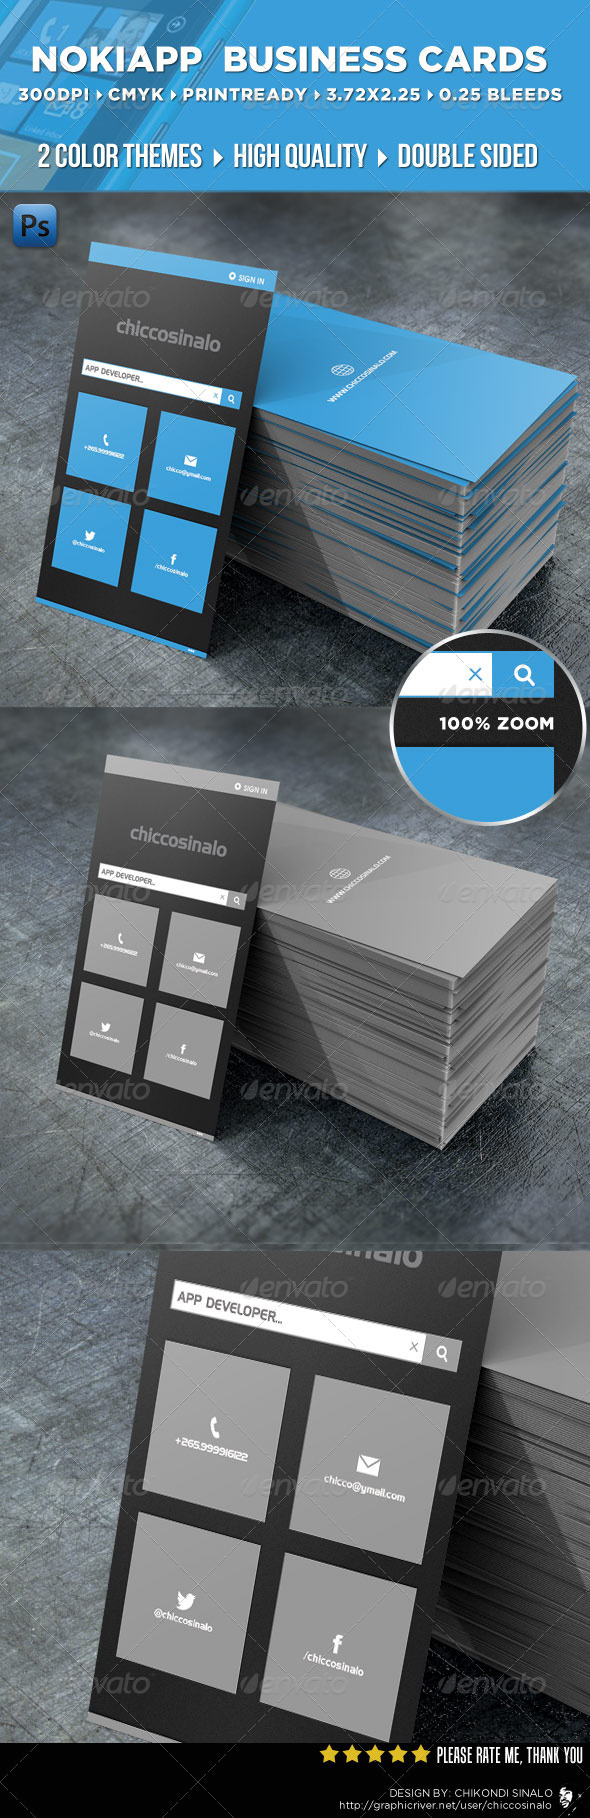 NokiApp Business Card - Creative Business Cards